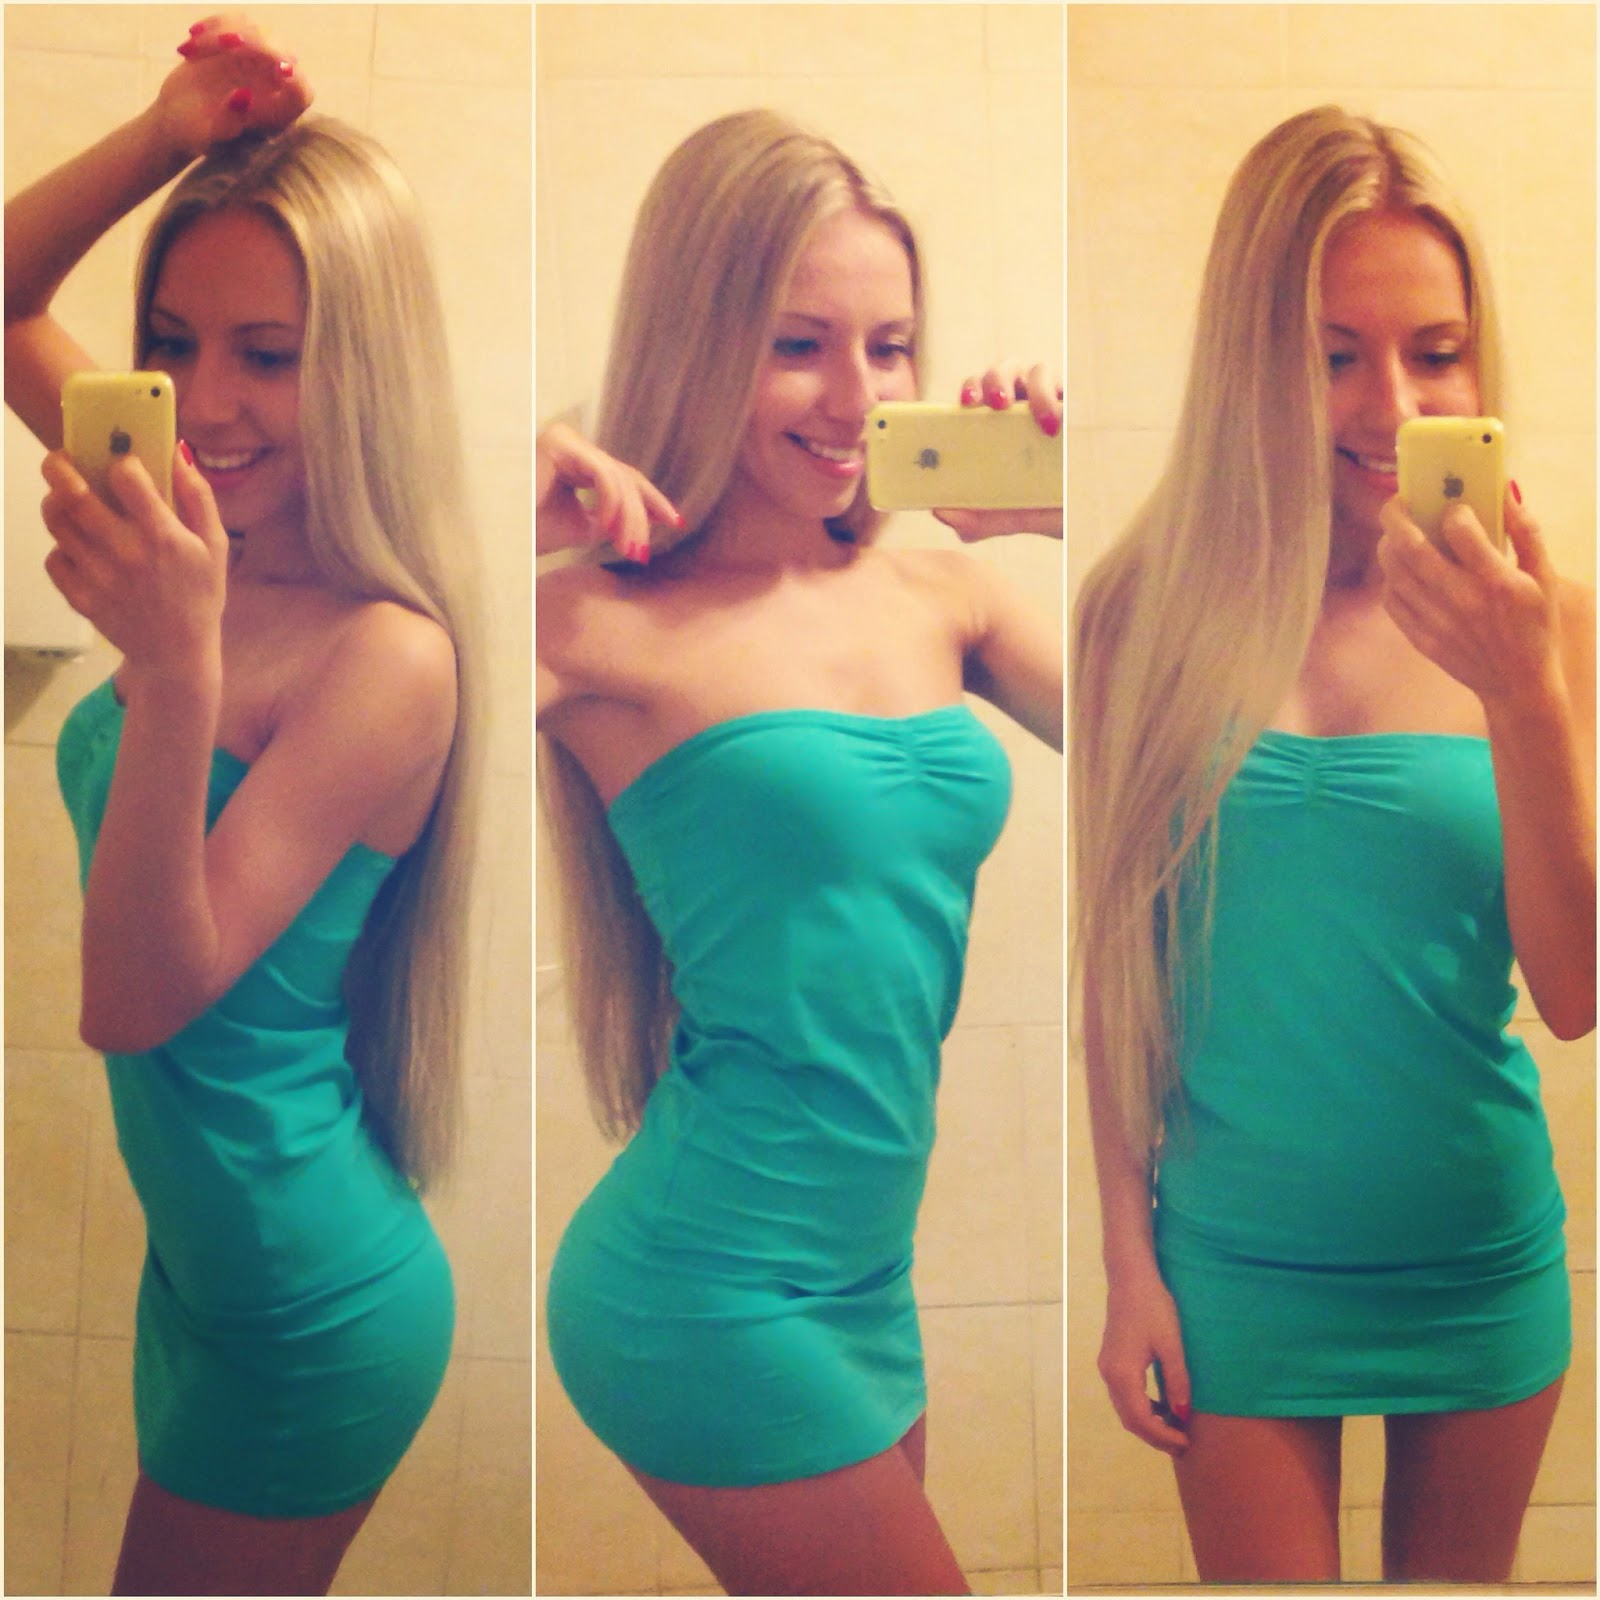 Date slam ukrainian hottie daphne klyde on tinder part 2 10